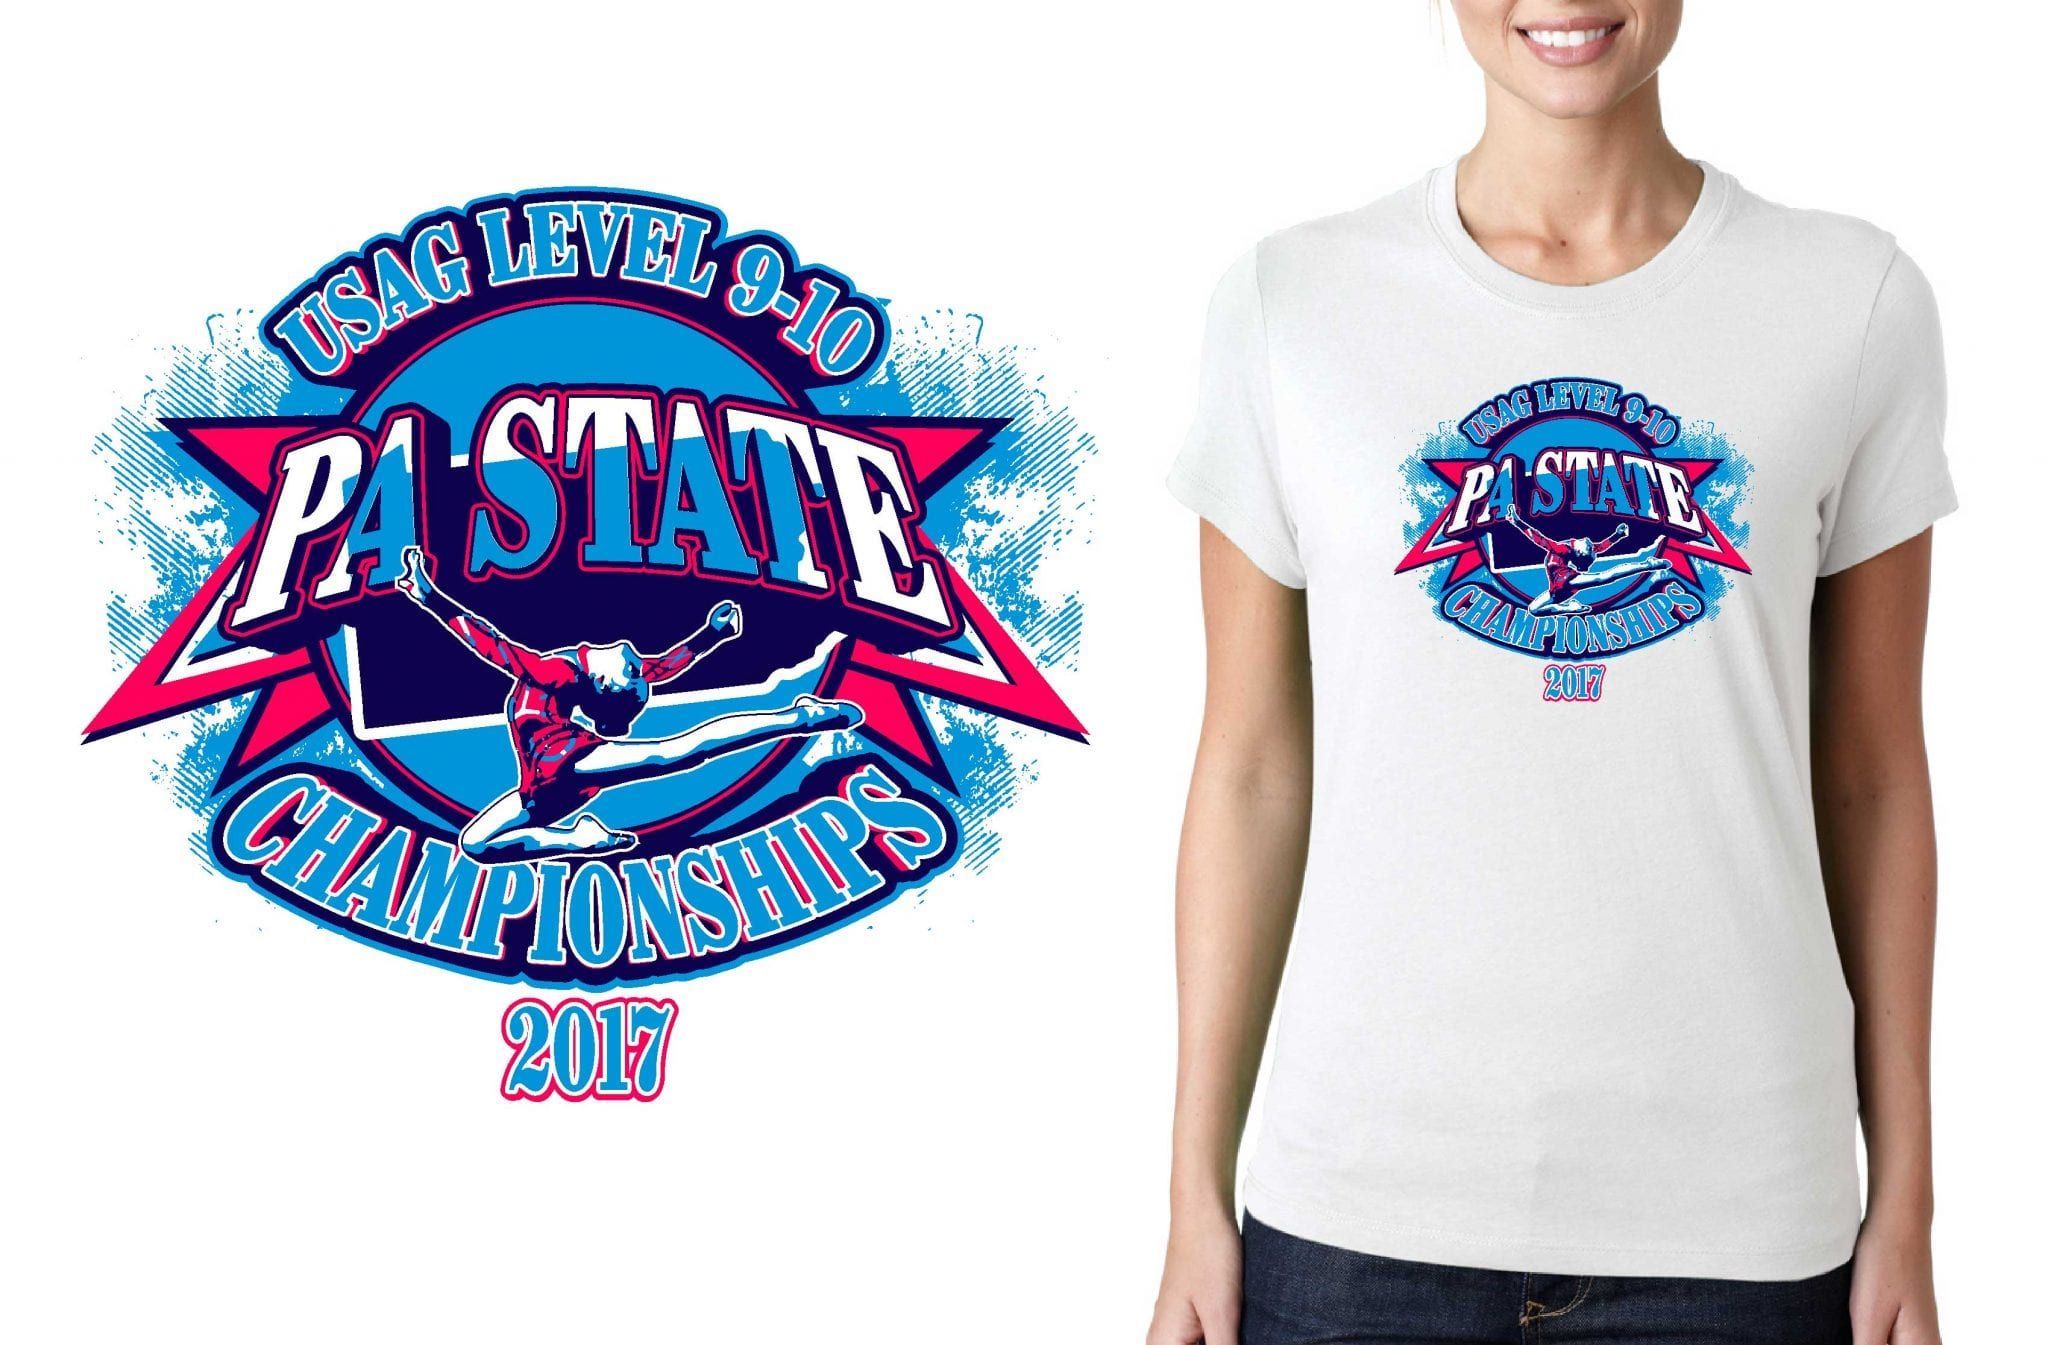 2017 level 9 10 pa state championships vector logo design Gymnastics t shirt designs